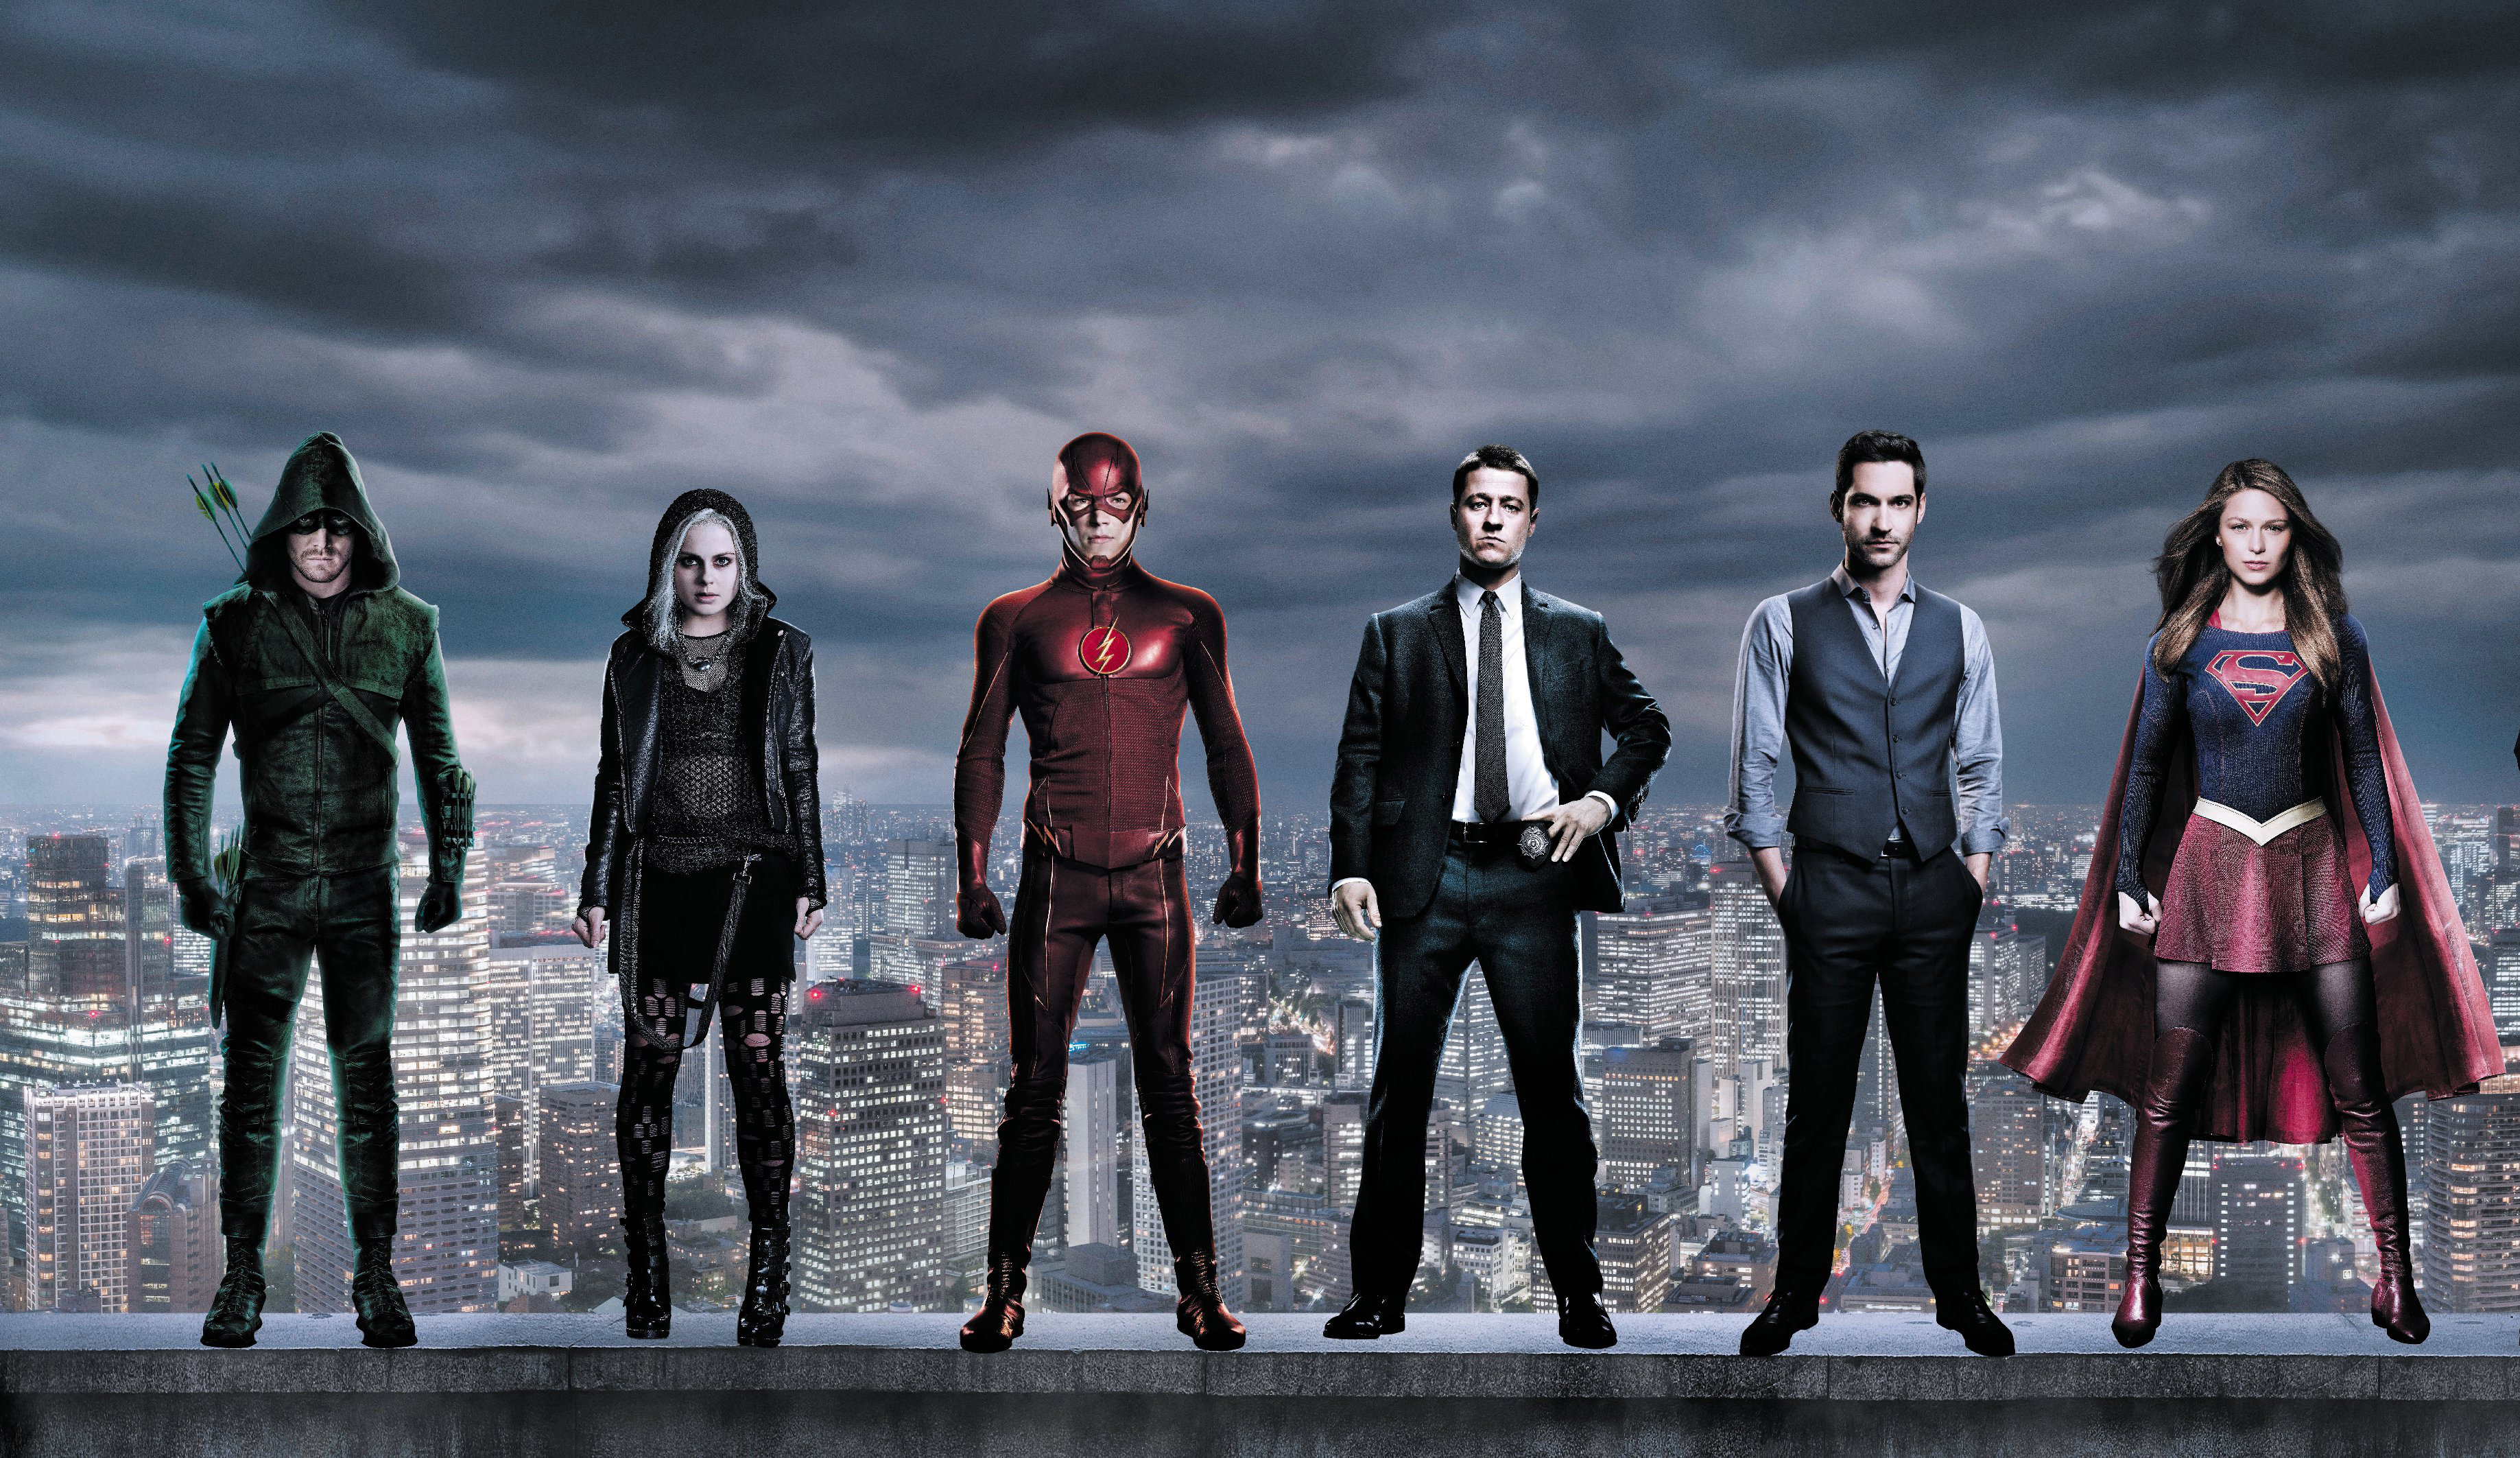 Dc the cw superheroes hd tv shows 4k wallpapers images backgrounds photos and pictures - Dc characters wallpaper hd ...